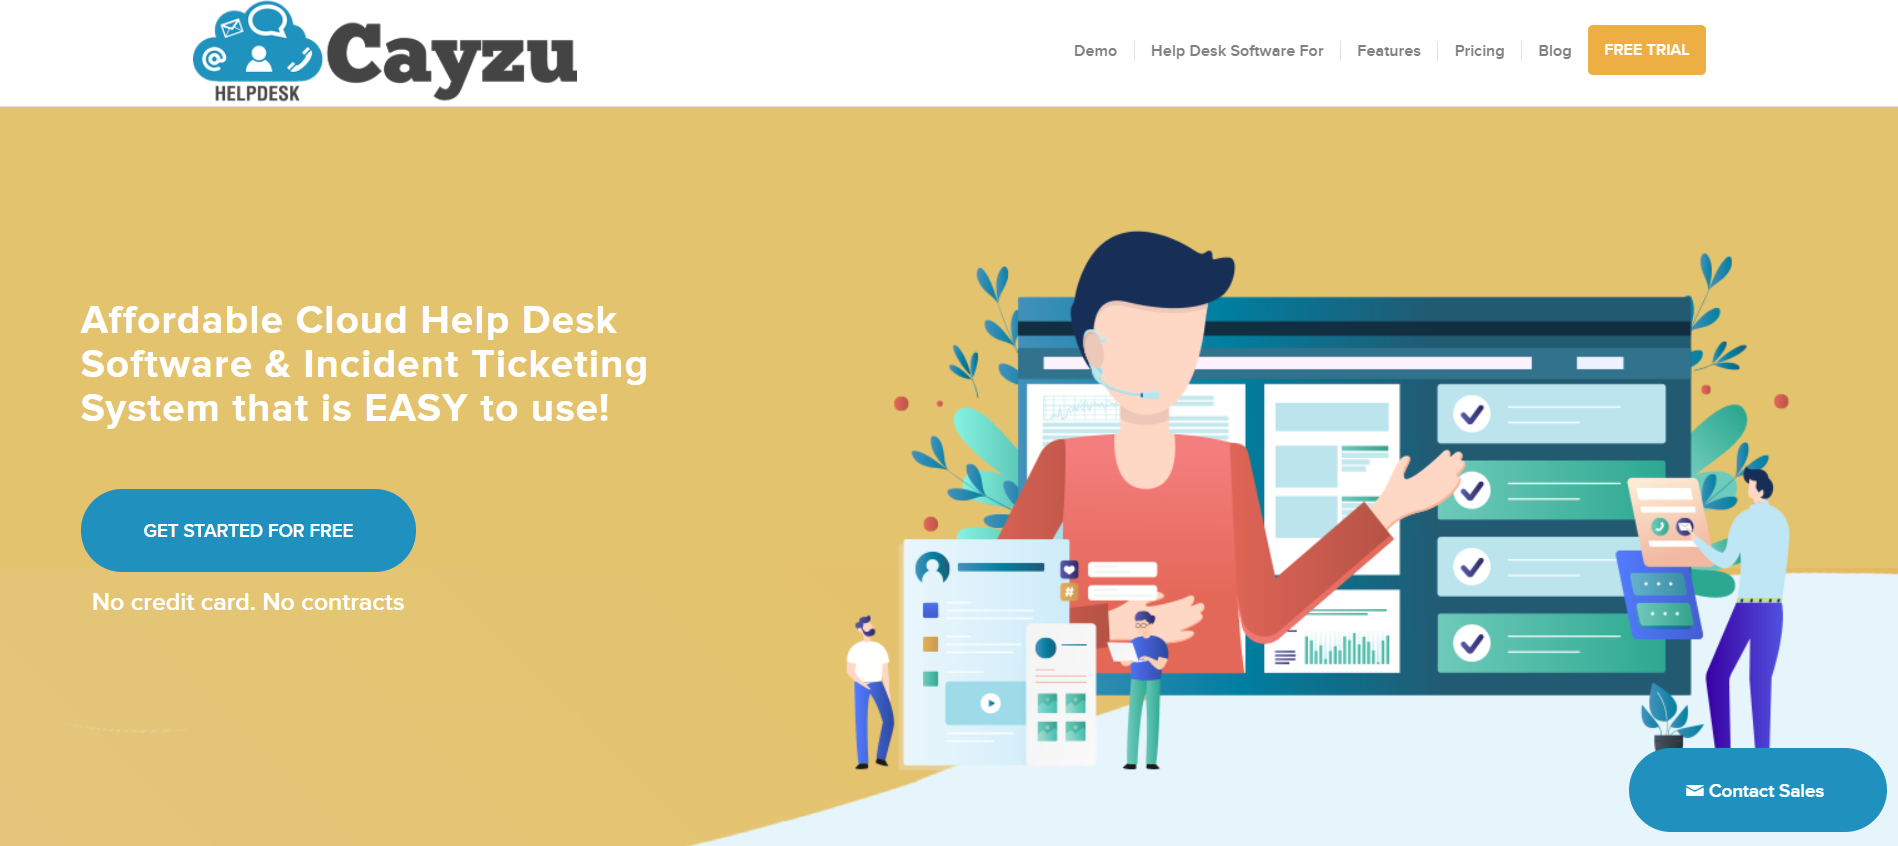 Cayzu homepage: Affordable Cloud Help Desk Software & Incident Ticketing System that is EASY to use!